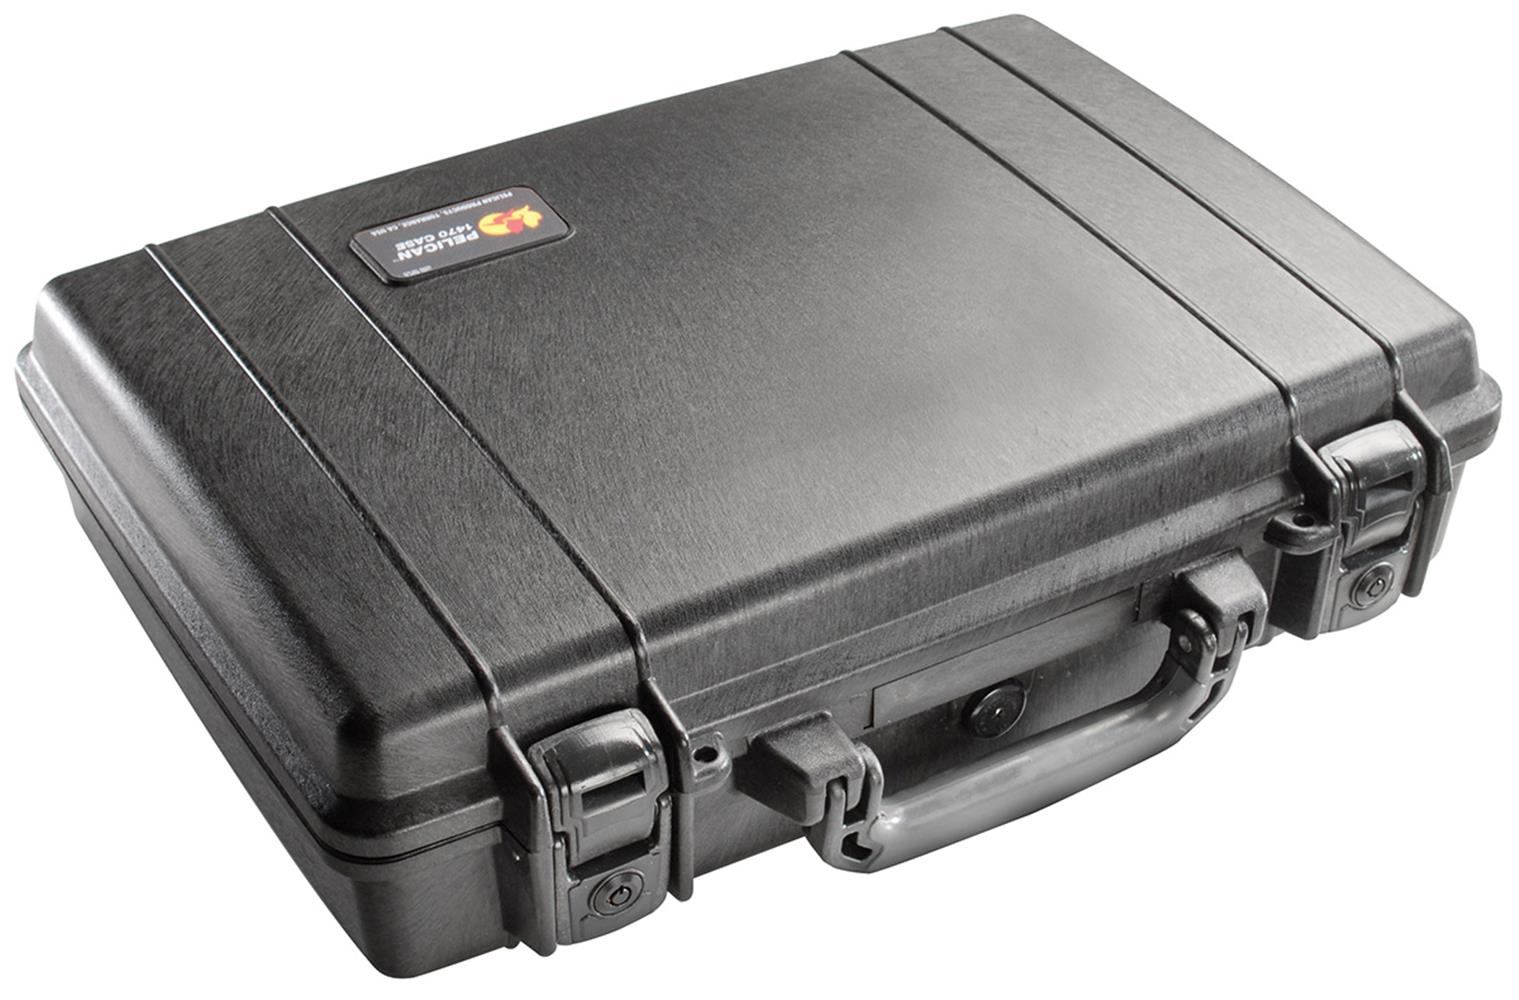 pelican-hard-case-watertight-laptop-briefcase.jpg